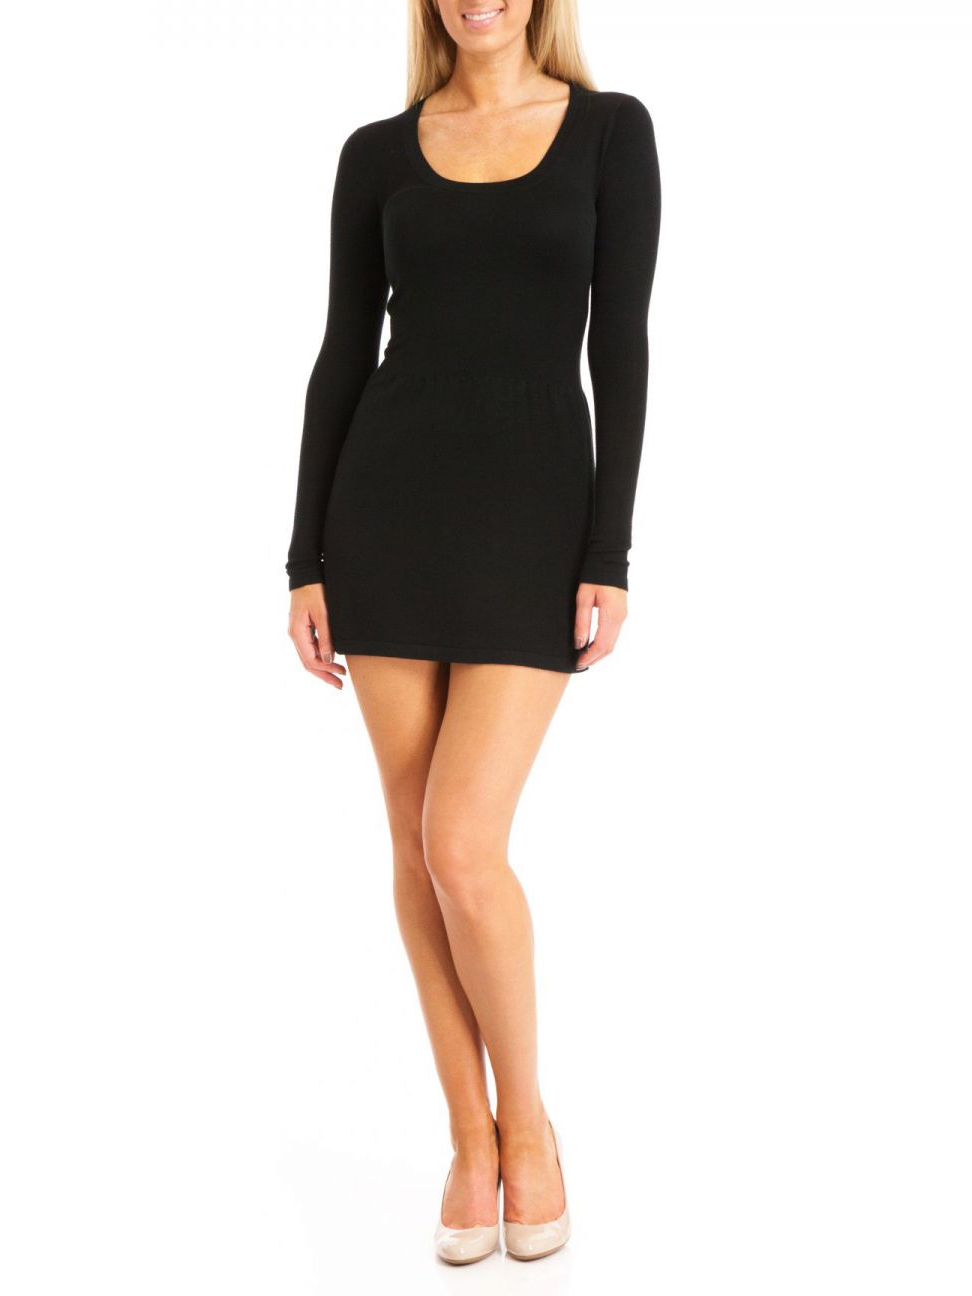 Survival Women's Baby Doll Knit Dress - Black - Small